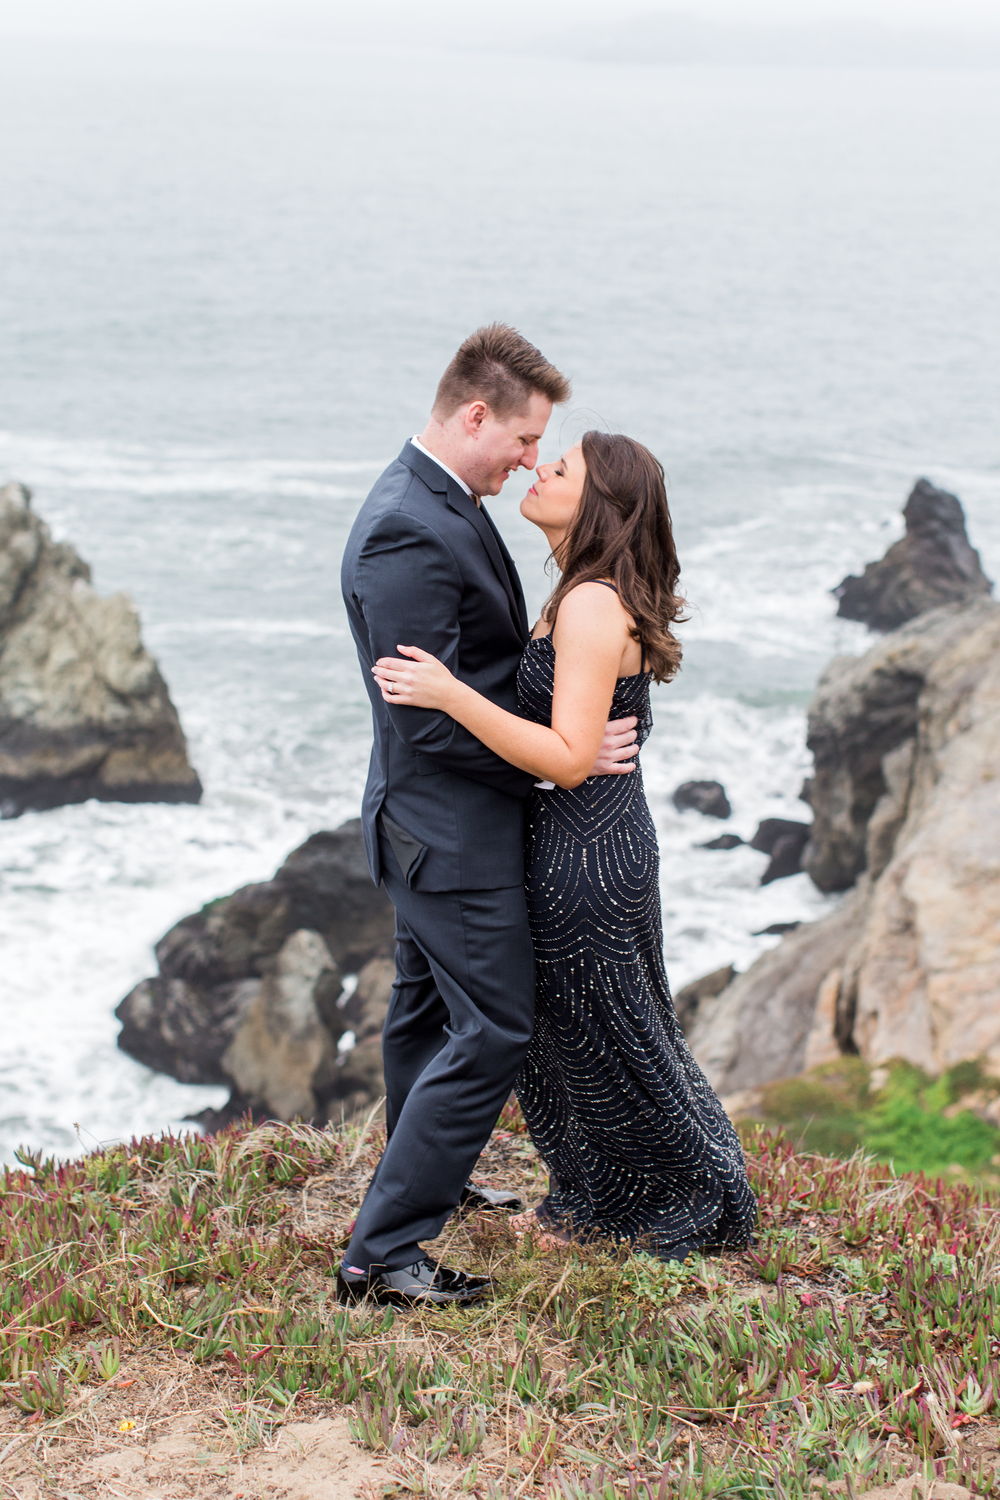 sutro-baths-engagement-photos-44.jpg